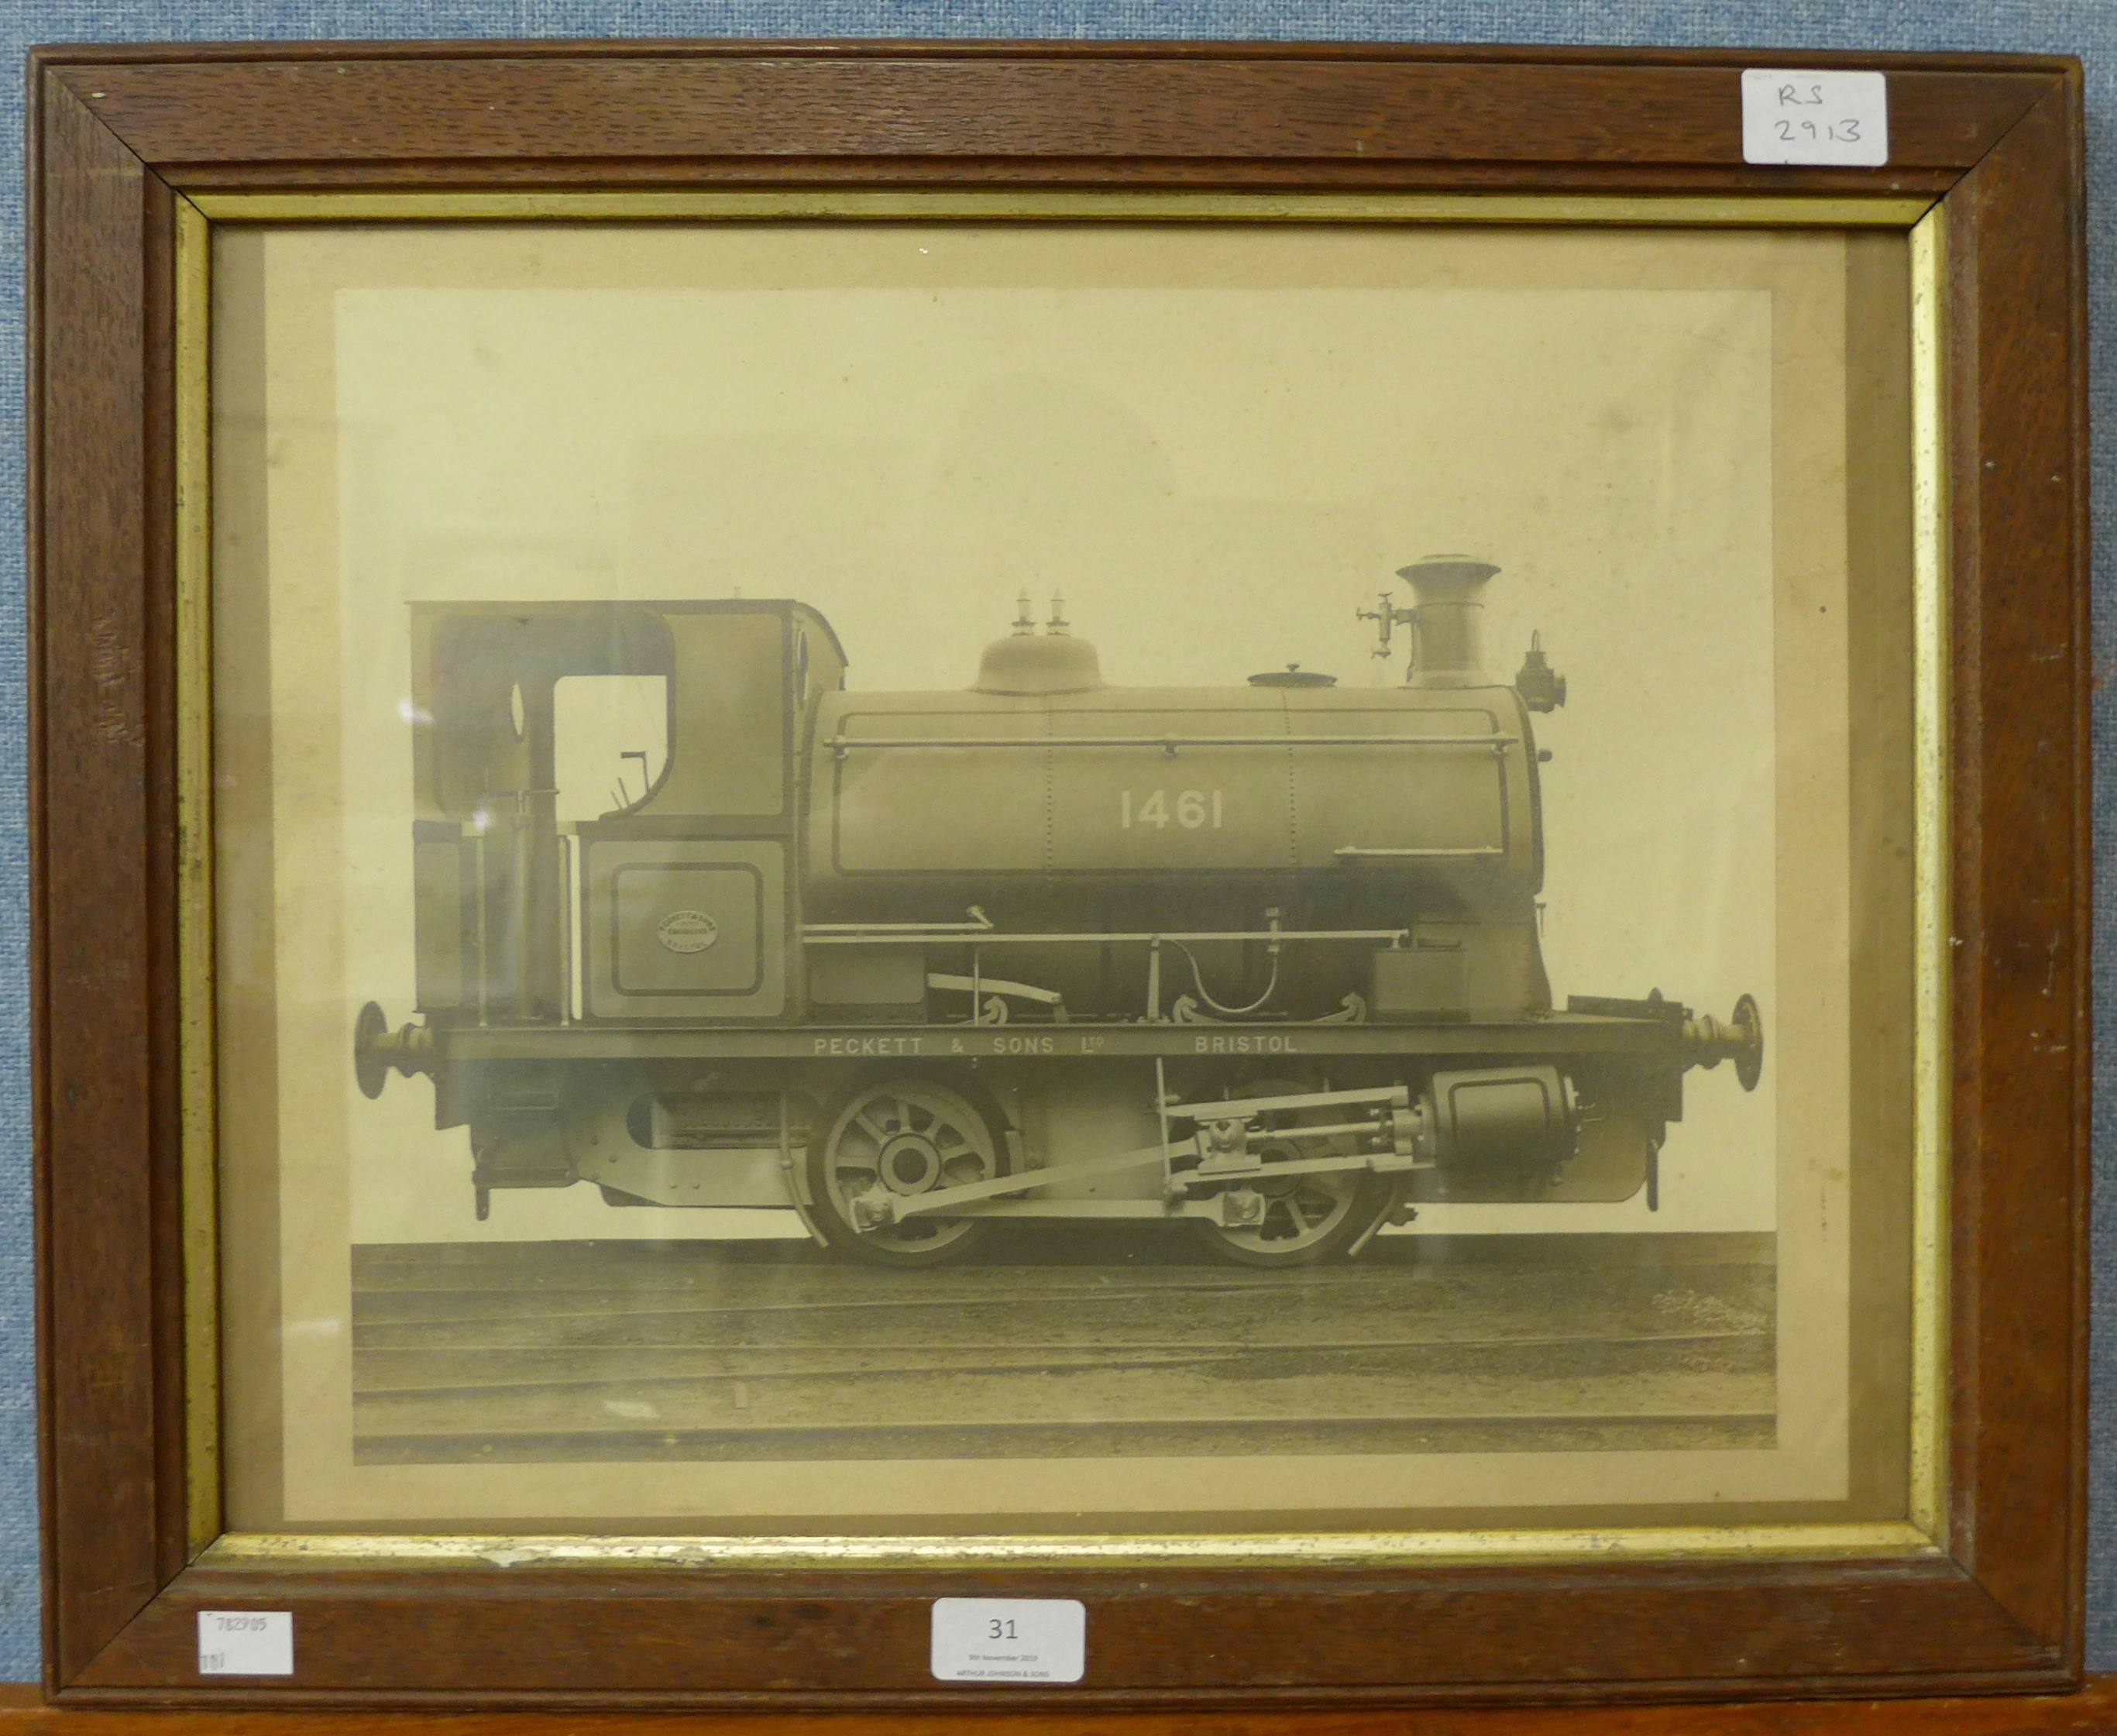 Lot 31 - A black and white photograph of a locomotive, 1461 Peckett & Sons Ltd.